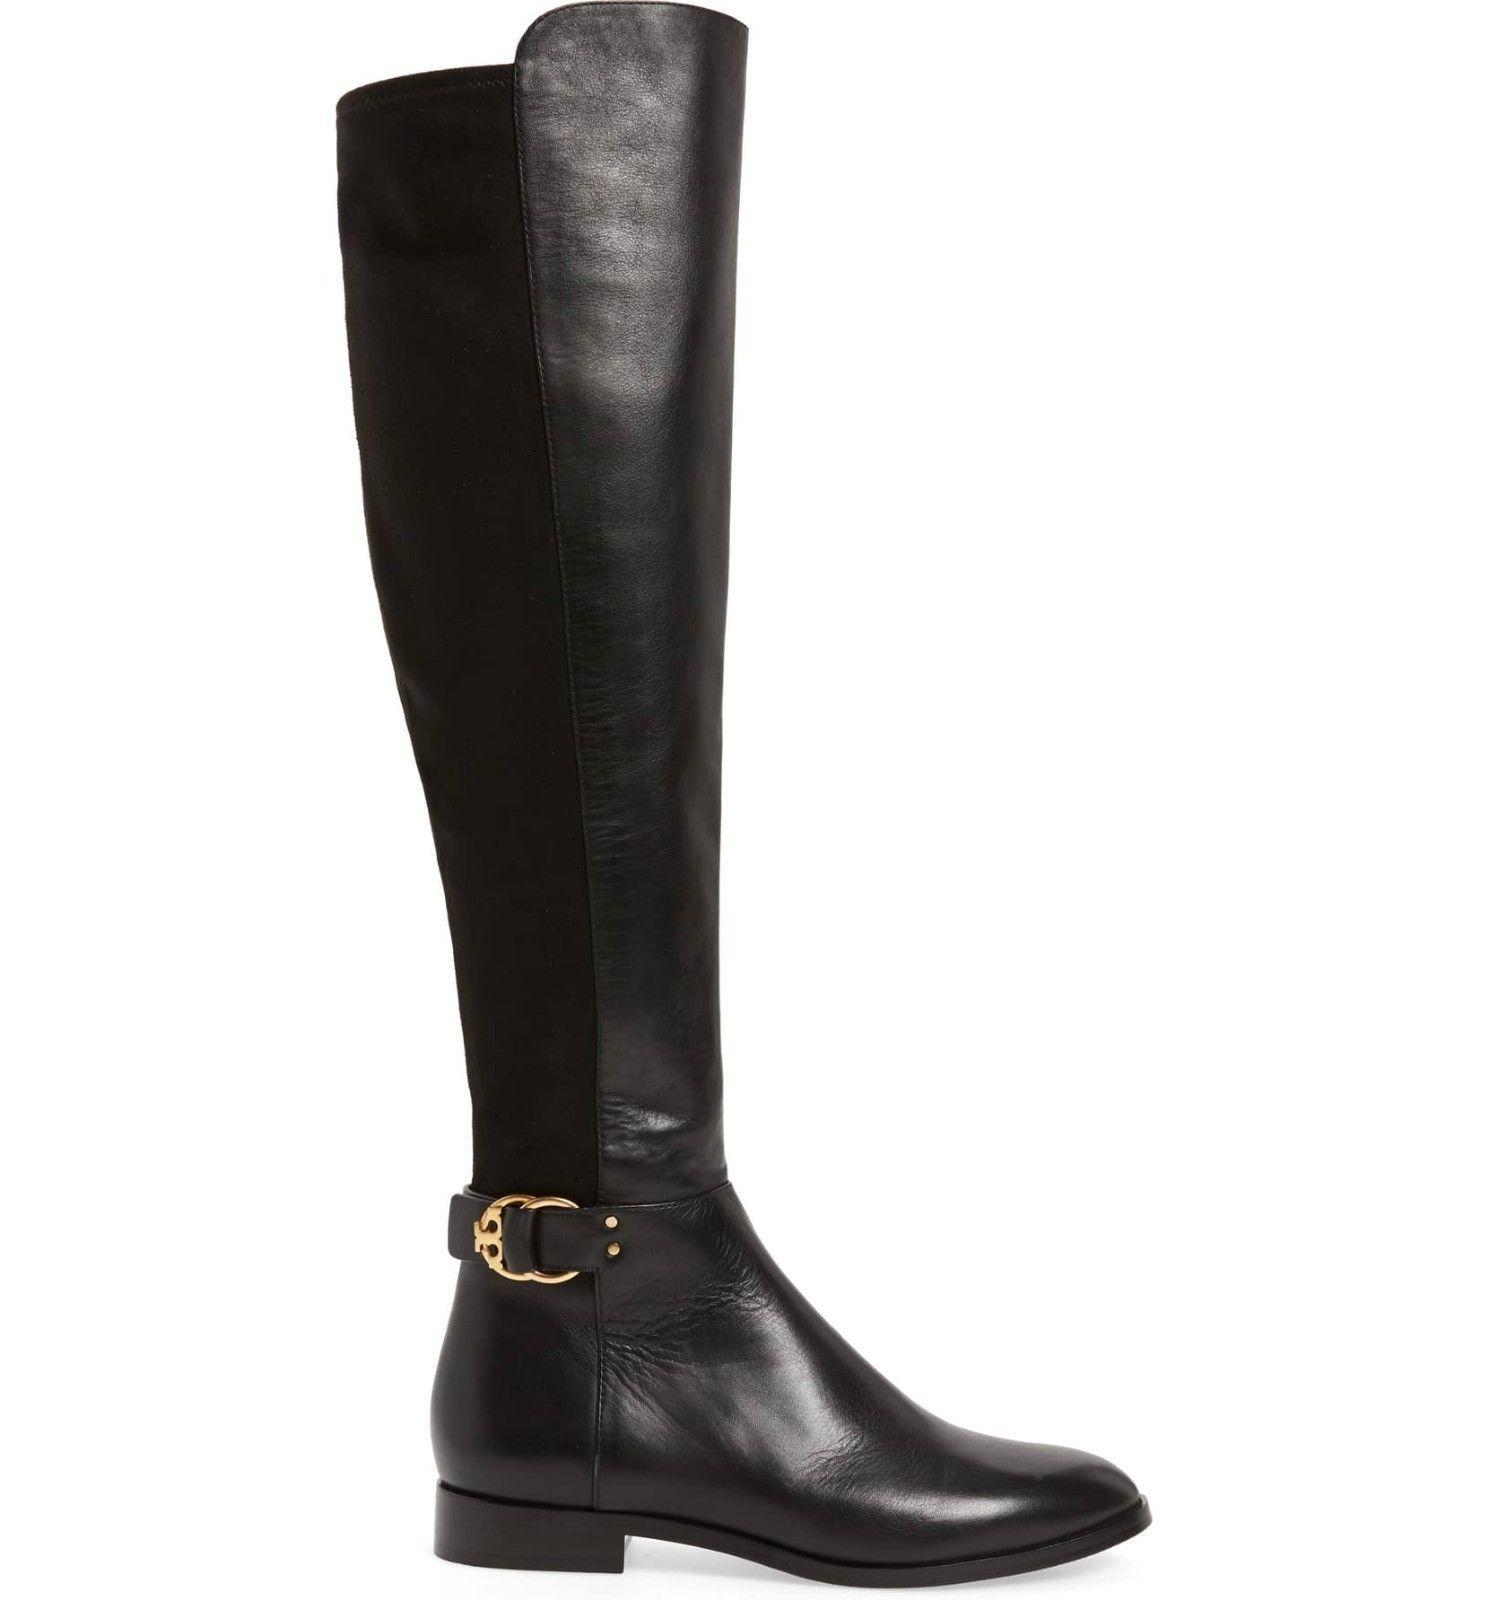 aaa63237c739 7431. 7431. Previous. Tory Burch MARSDEN Stretch Riding Boots Flat  Equestrian Booties 6 Over Knee